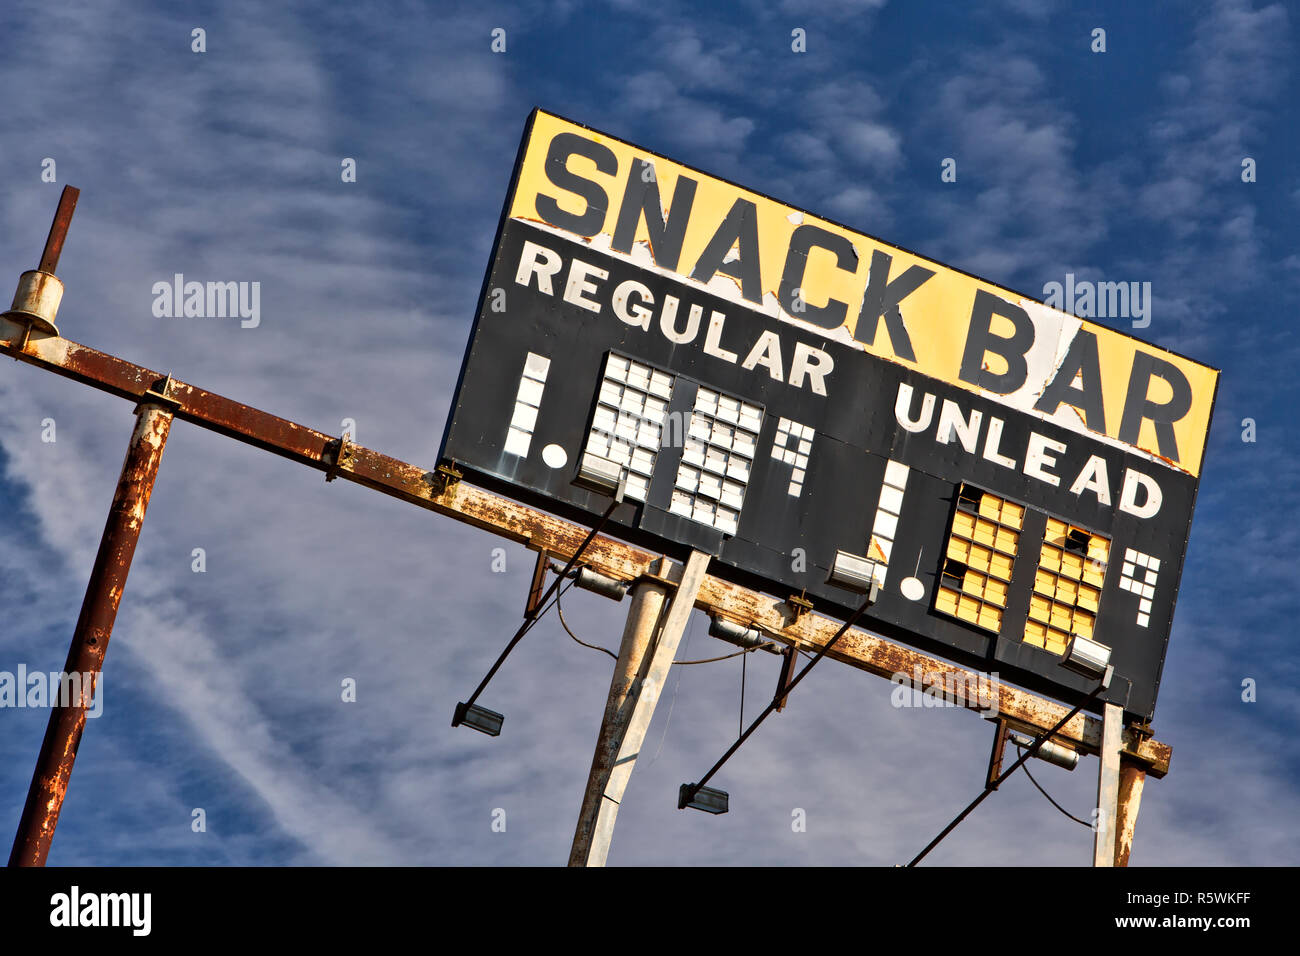 Elevated Vintage Gas Station Sign 'Snack Bar - Regular & Unlead'  gasoline,  against a scattered blue sky. - Stock Image